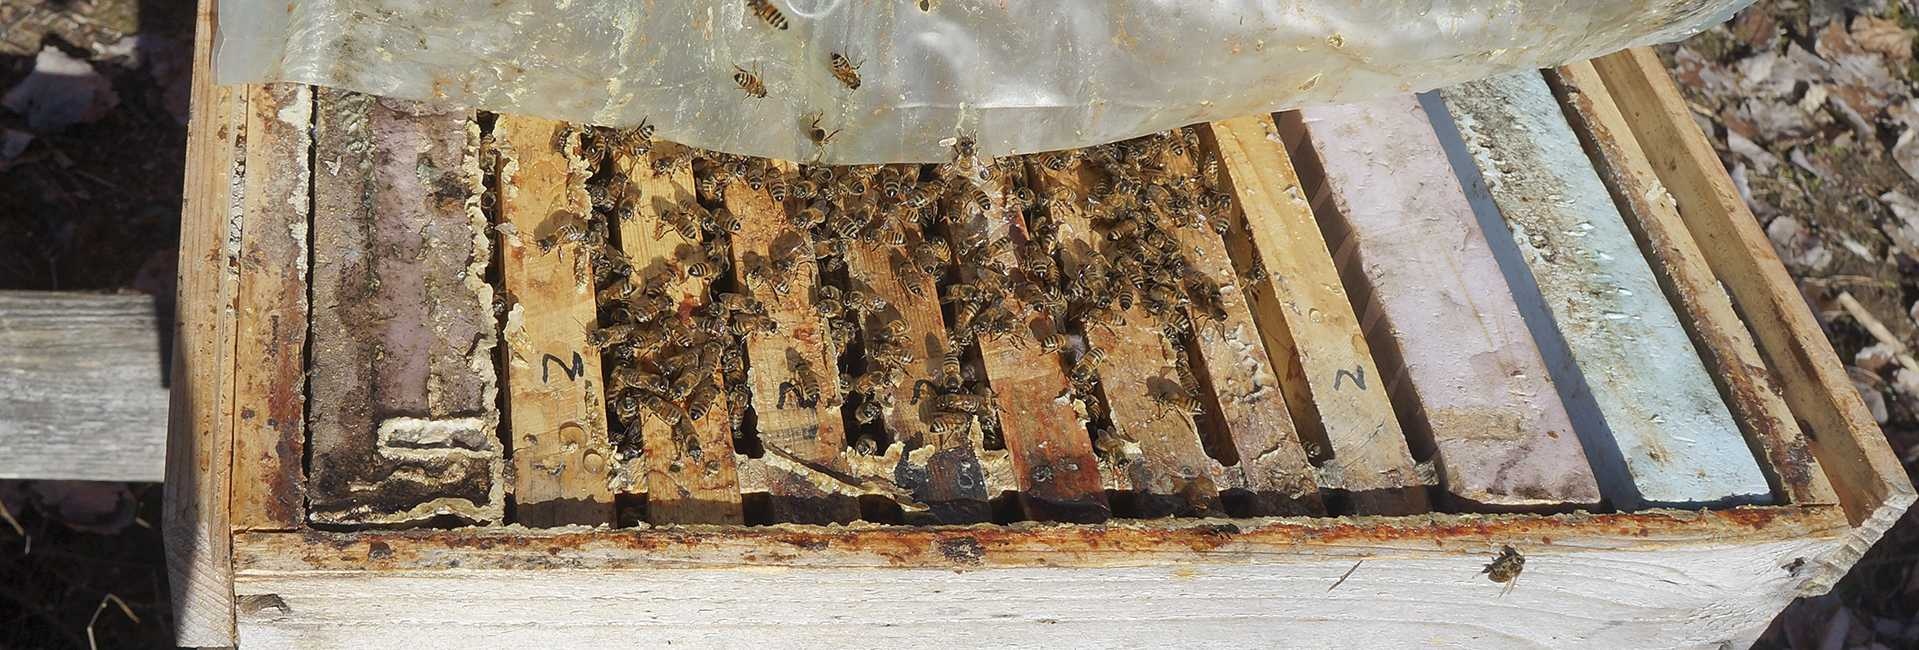 Treatment free feral bees